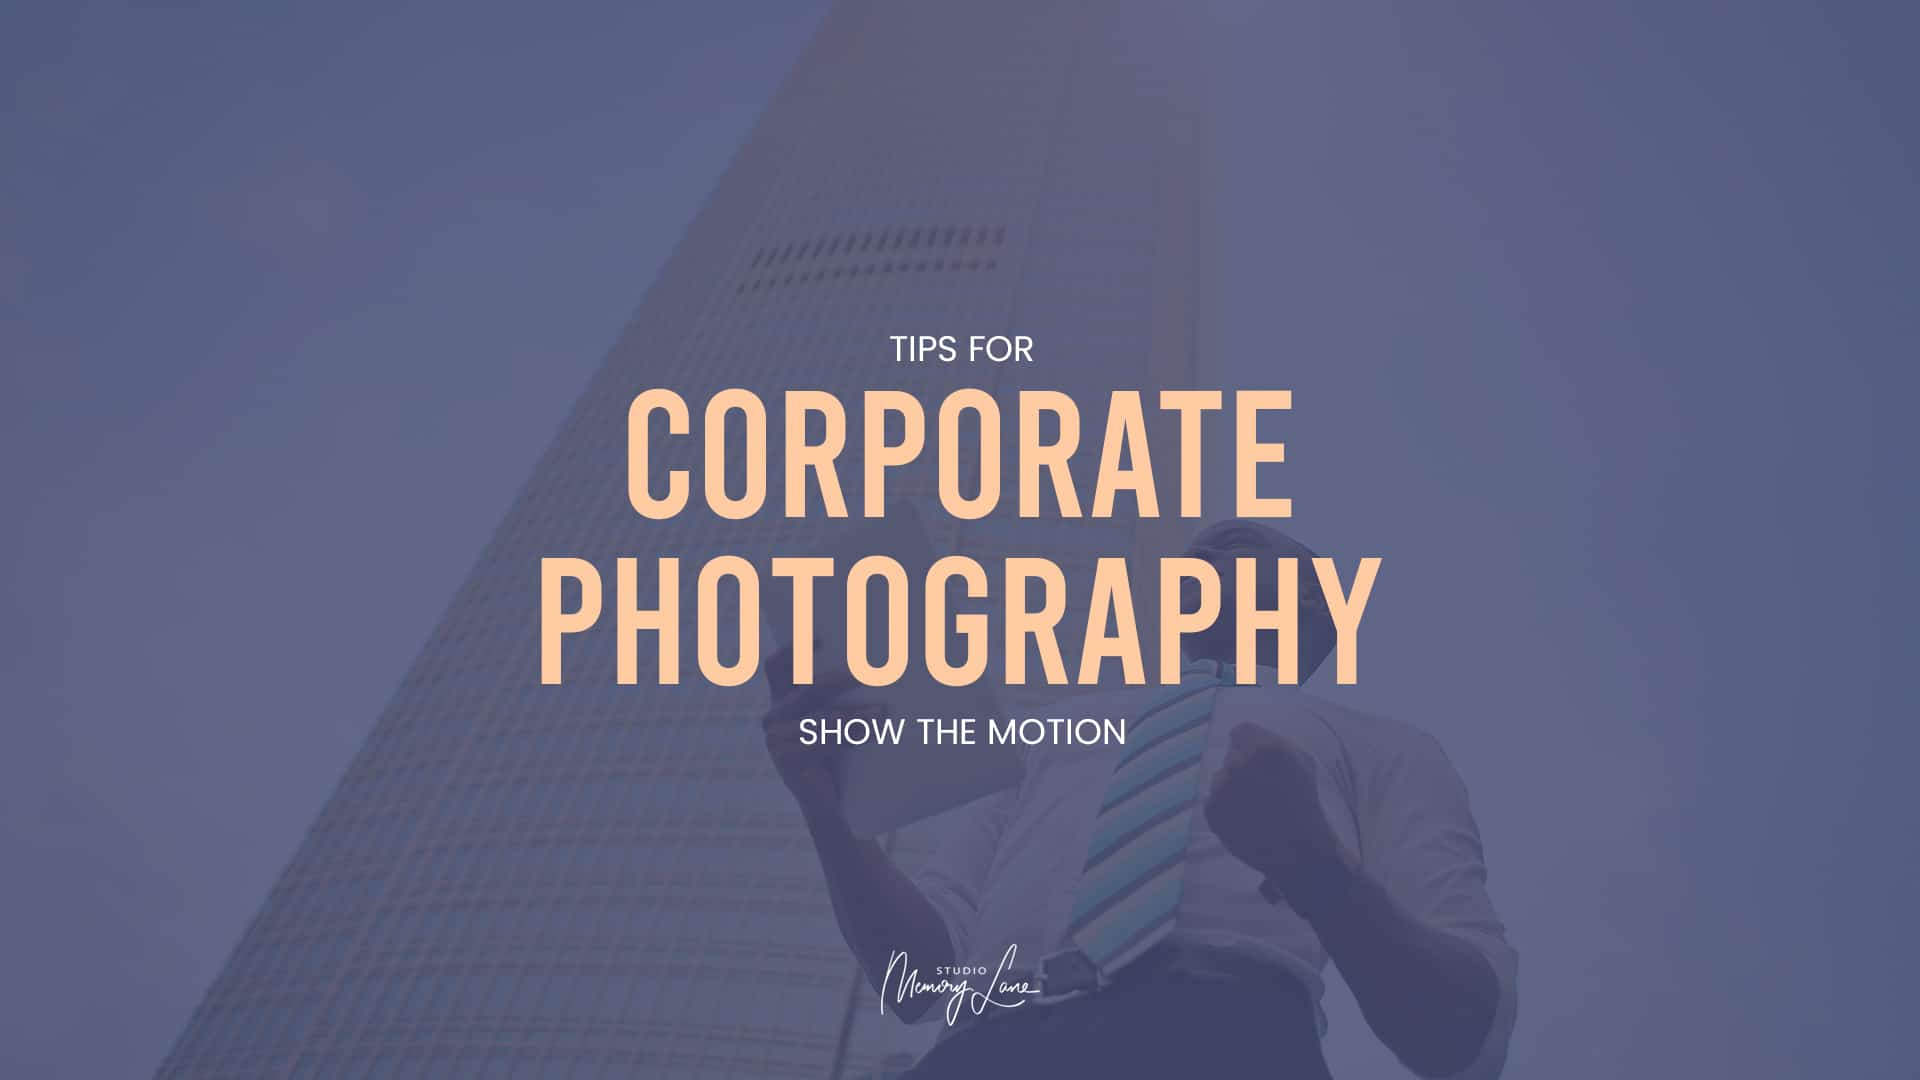 Tips for corporate photography